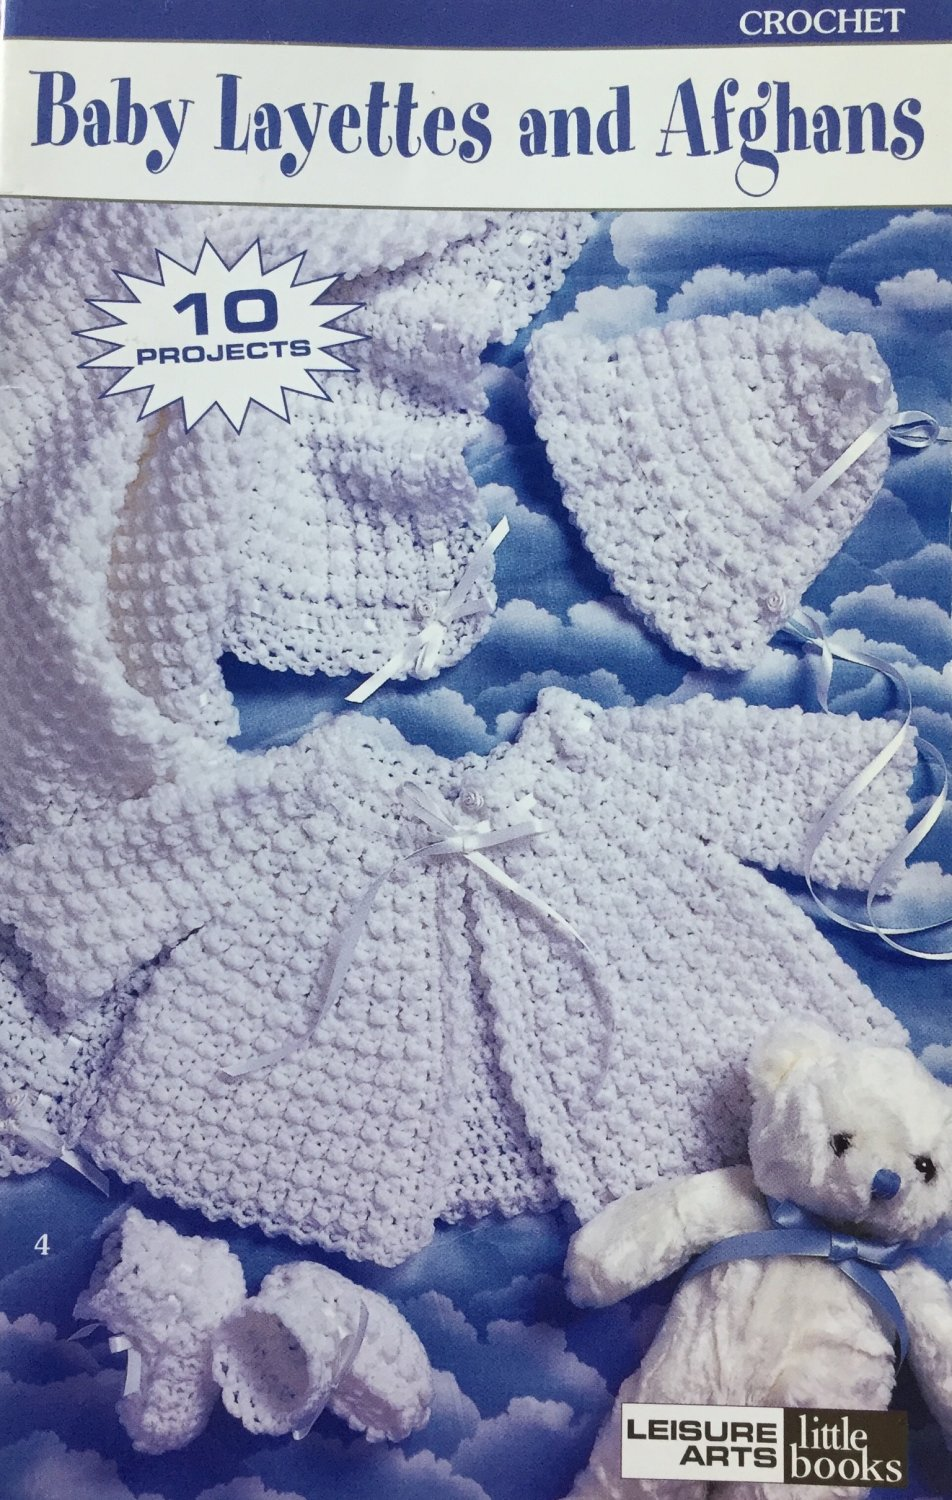 Baby Layettes and Afghans Crochet Pattern Leisure Arts 75027 10 Patterns.